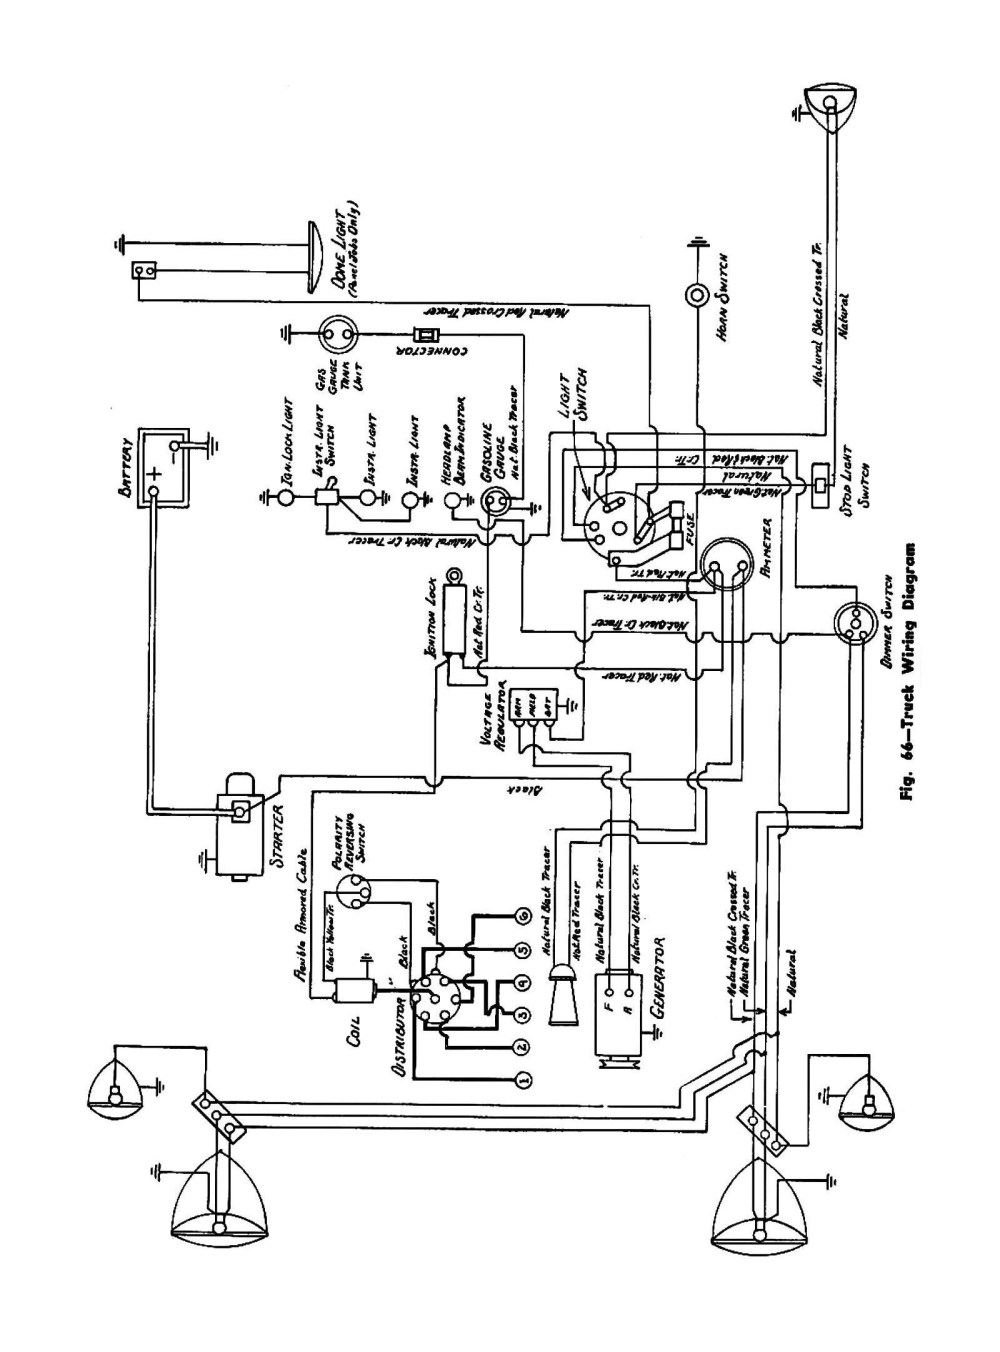 medium resolution of 1937 chevrolet wiring harness wiring diagram forward chevrolet trailer wiring harness chevrolet wiring harness